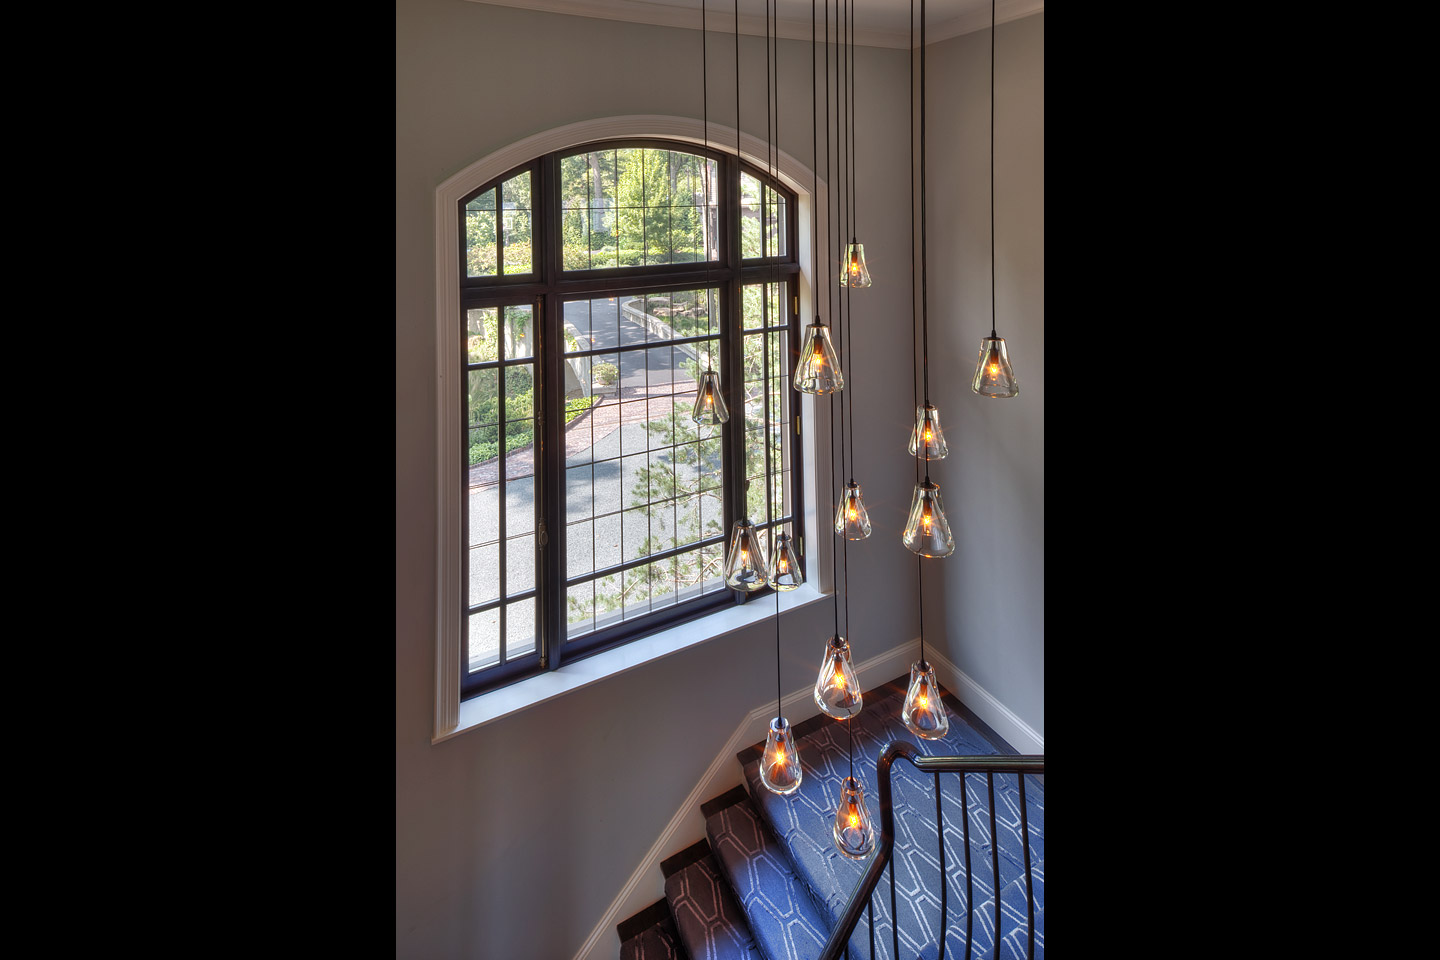 main stairwell to the second floor, featuring a hanging light fixture with beautiful blown glass shades, photographed by Jacob Rosenfeld